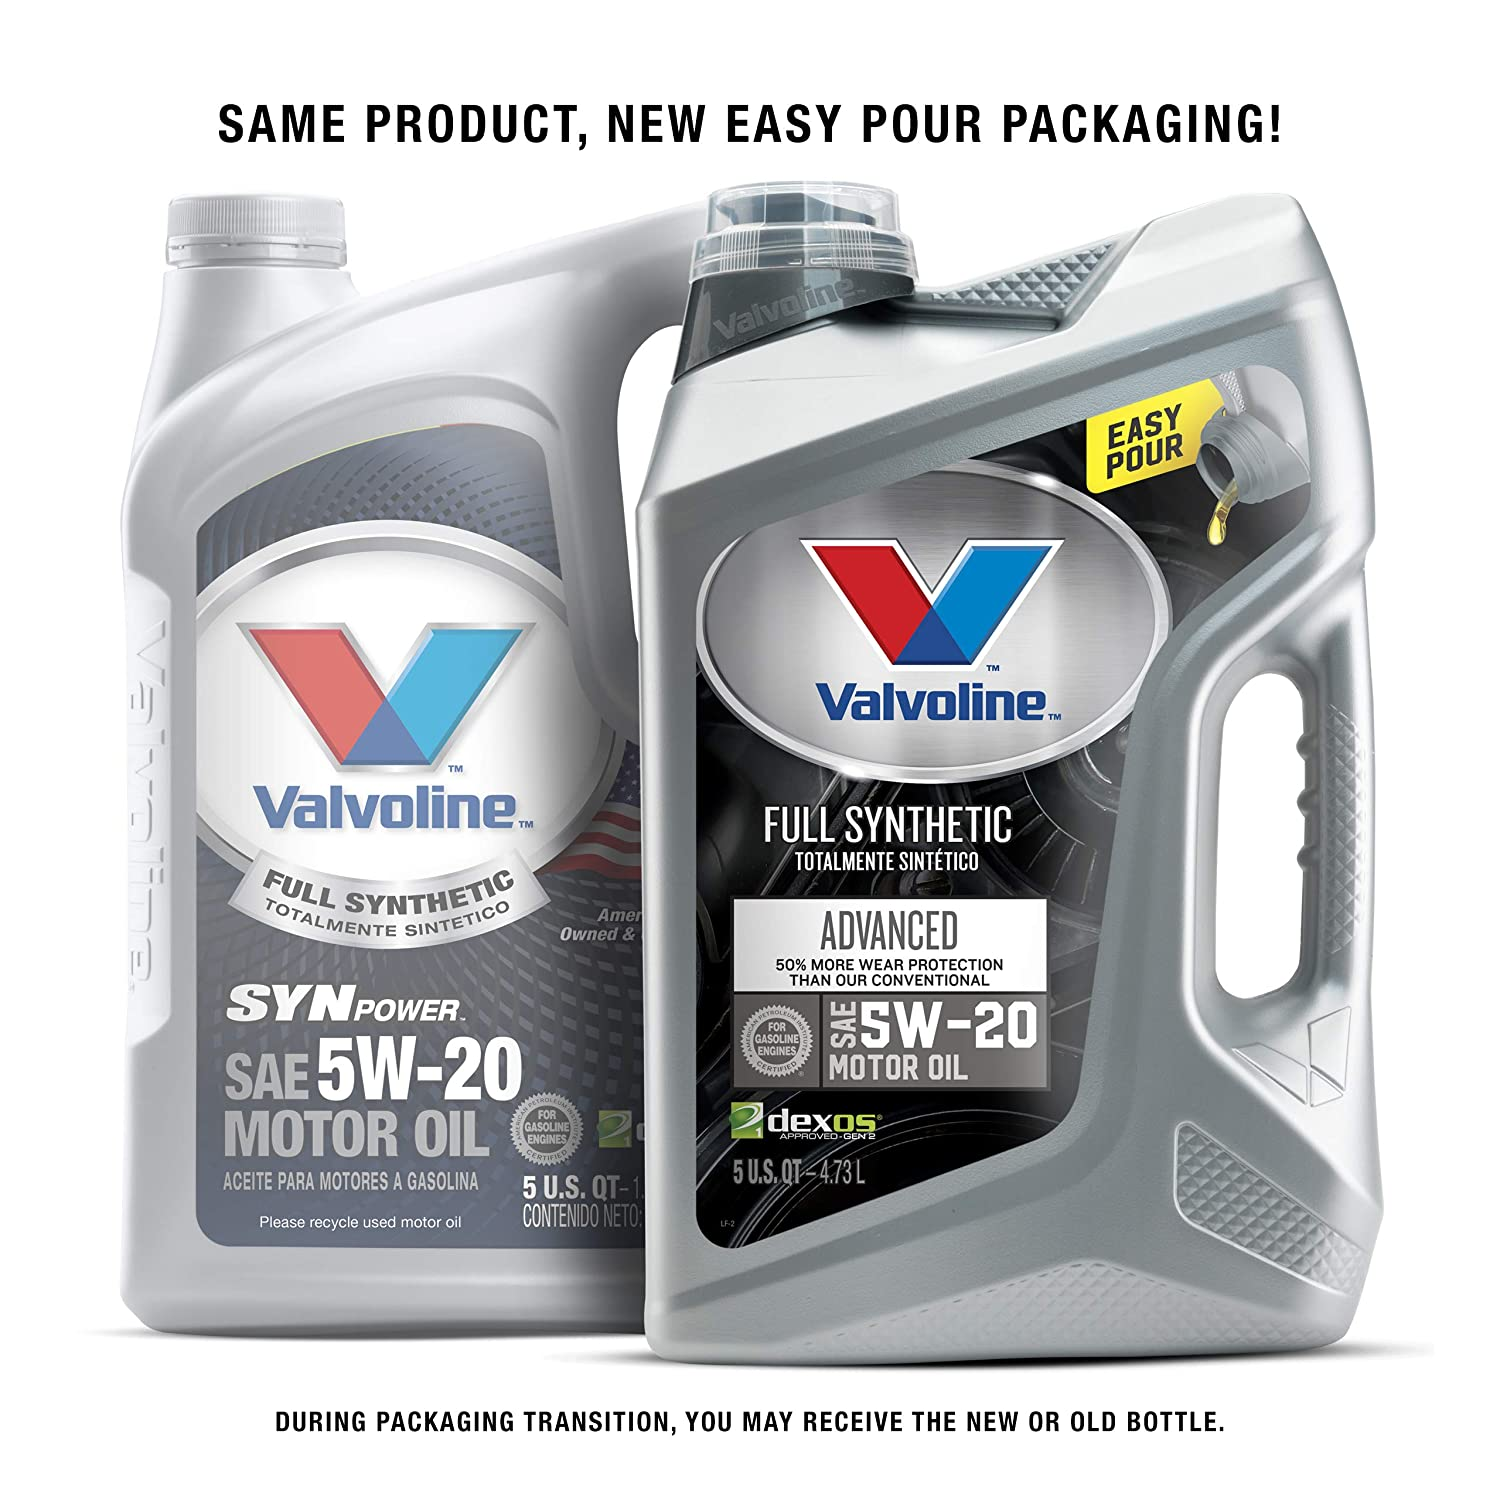 Amazon.com: Valvoline SynPower 5W-20 Full Synthetic Motor Oil - 5qt (Case of 3) (787023-3PK): Automotive